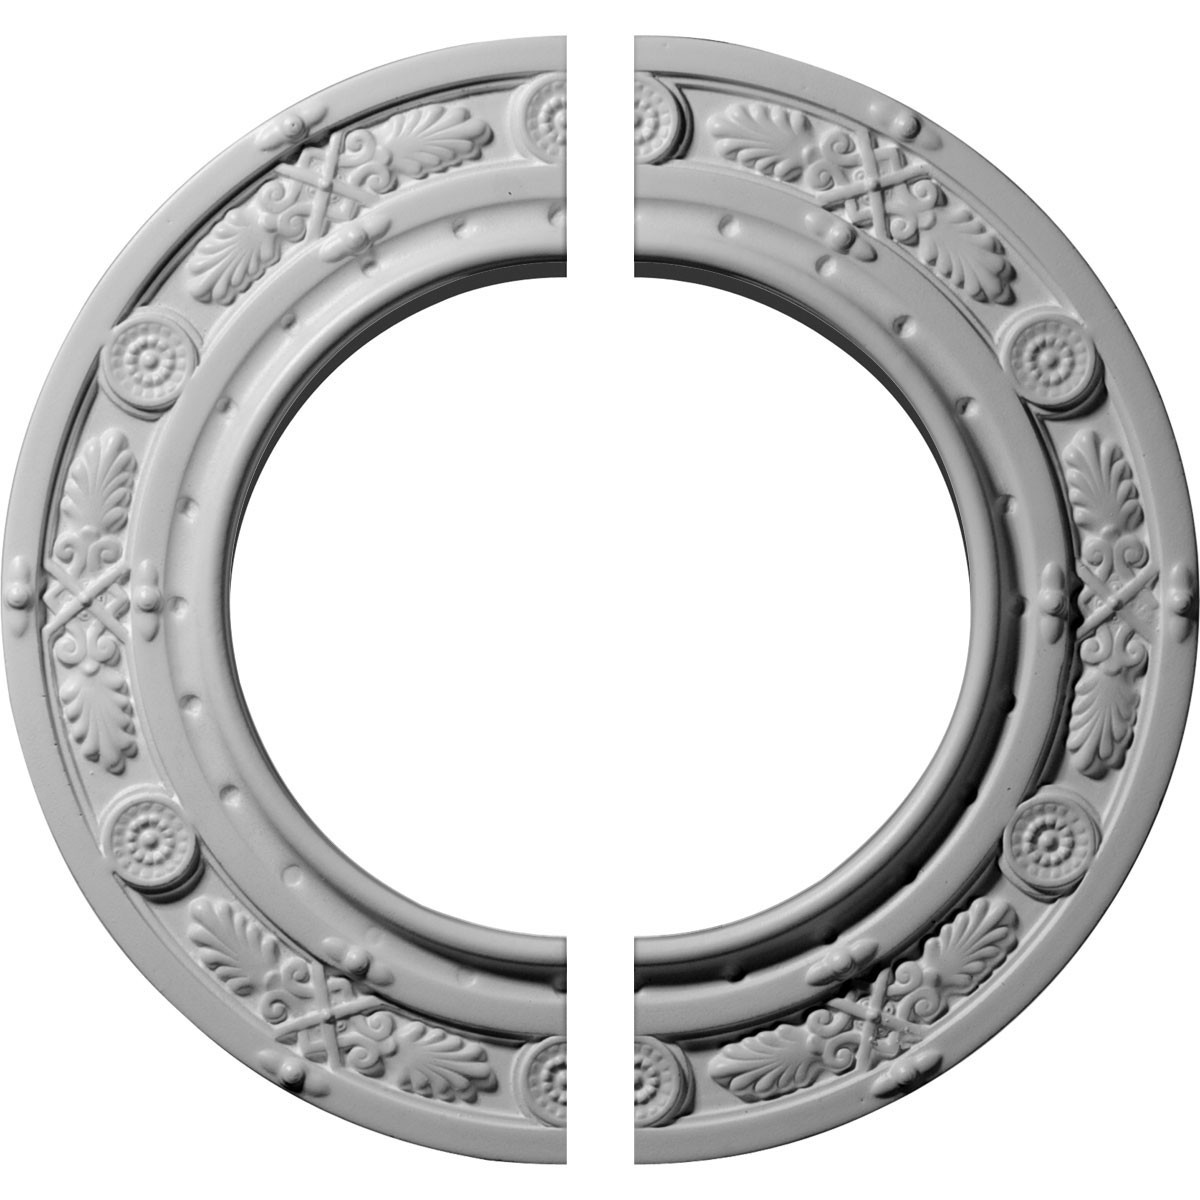 """EM-CM10DN2 - 10""""OD x 6 1/8""""ID x 1/2""""P Daniela Ceiling Medallion, Two Piece (Fits Canopies up to 6 1/8"""")"""